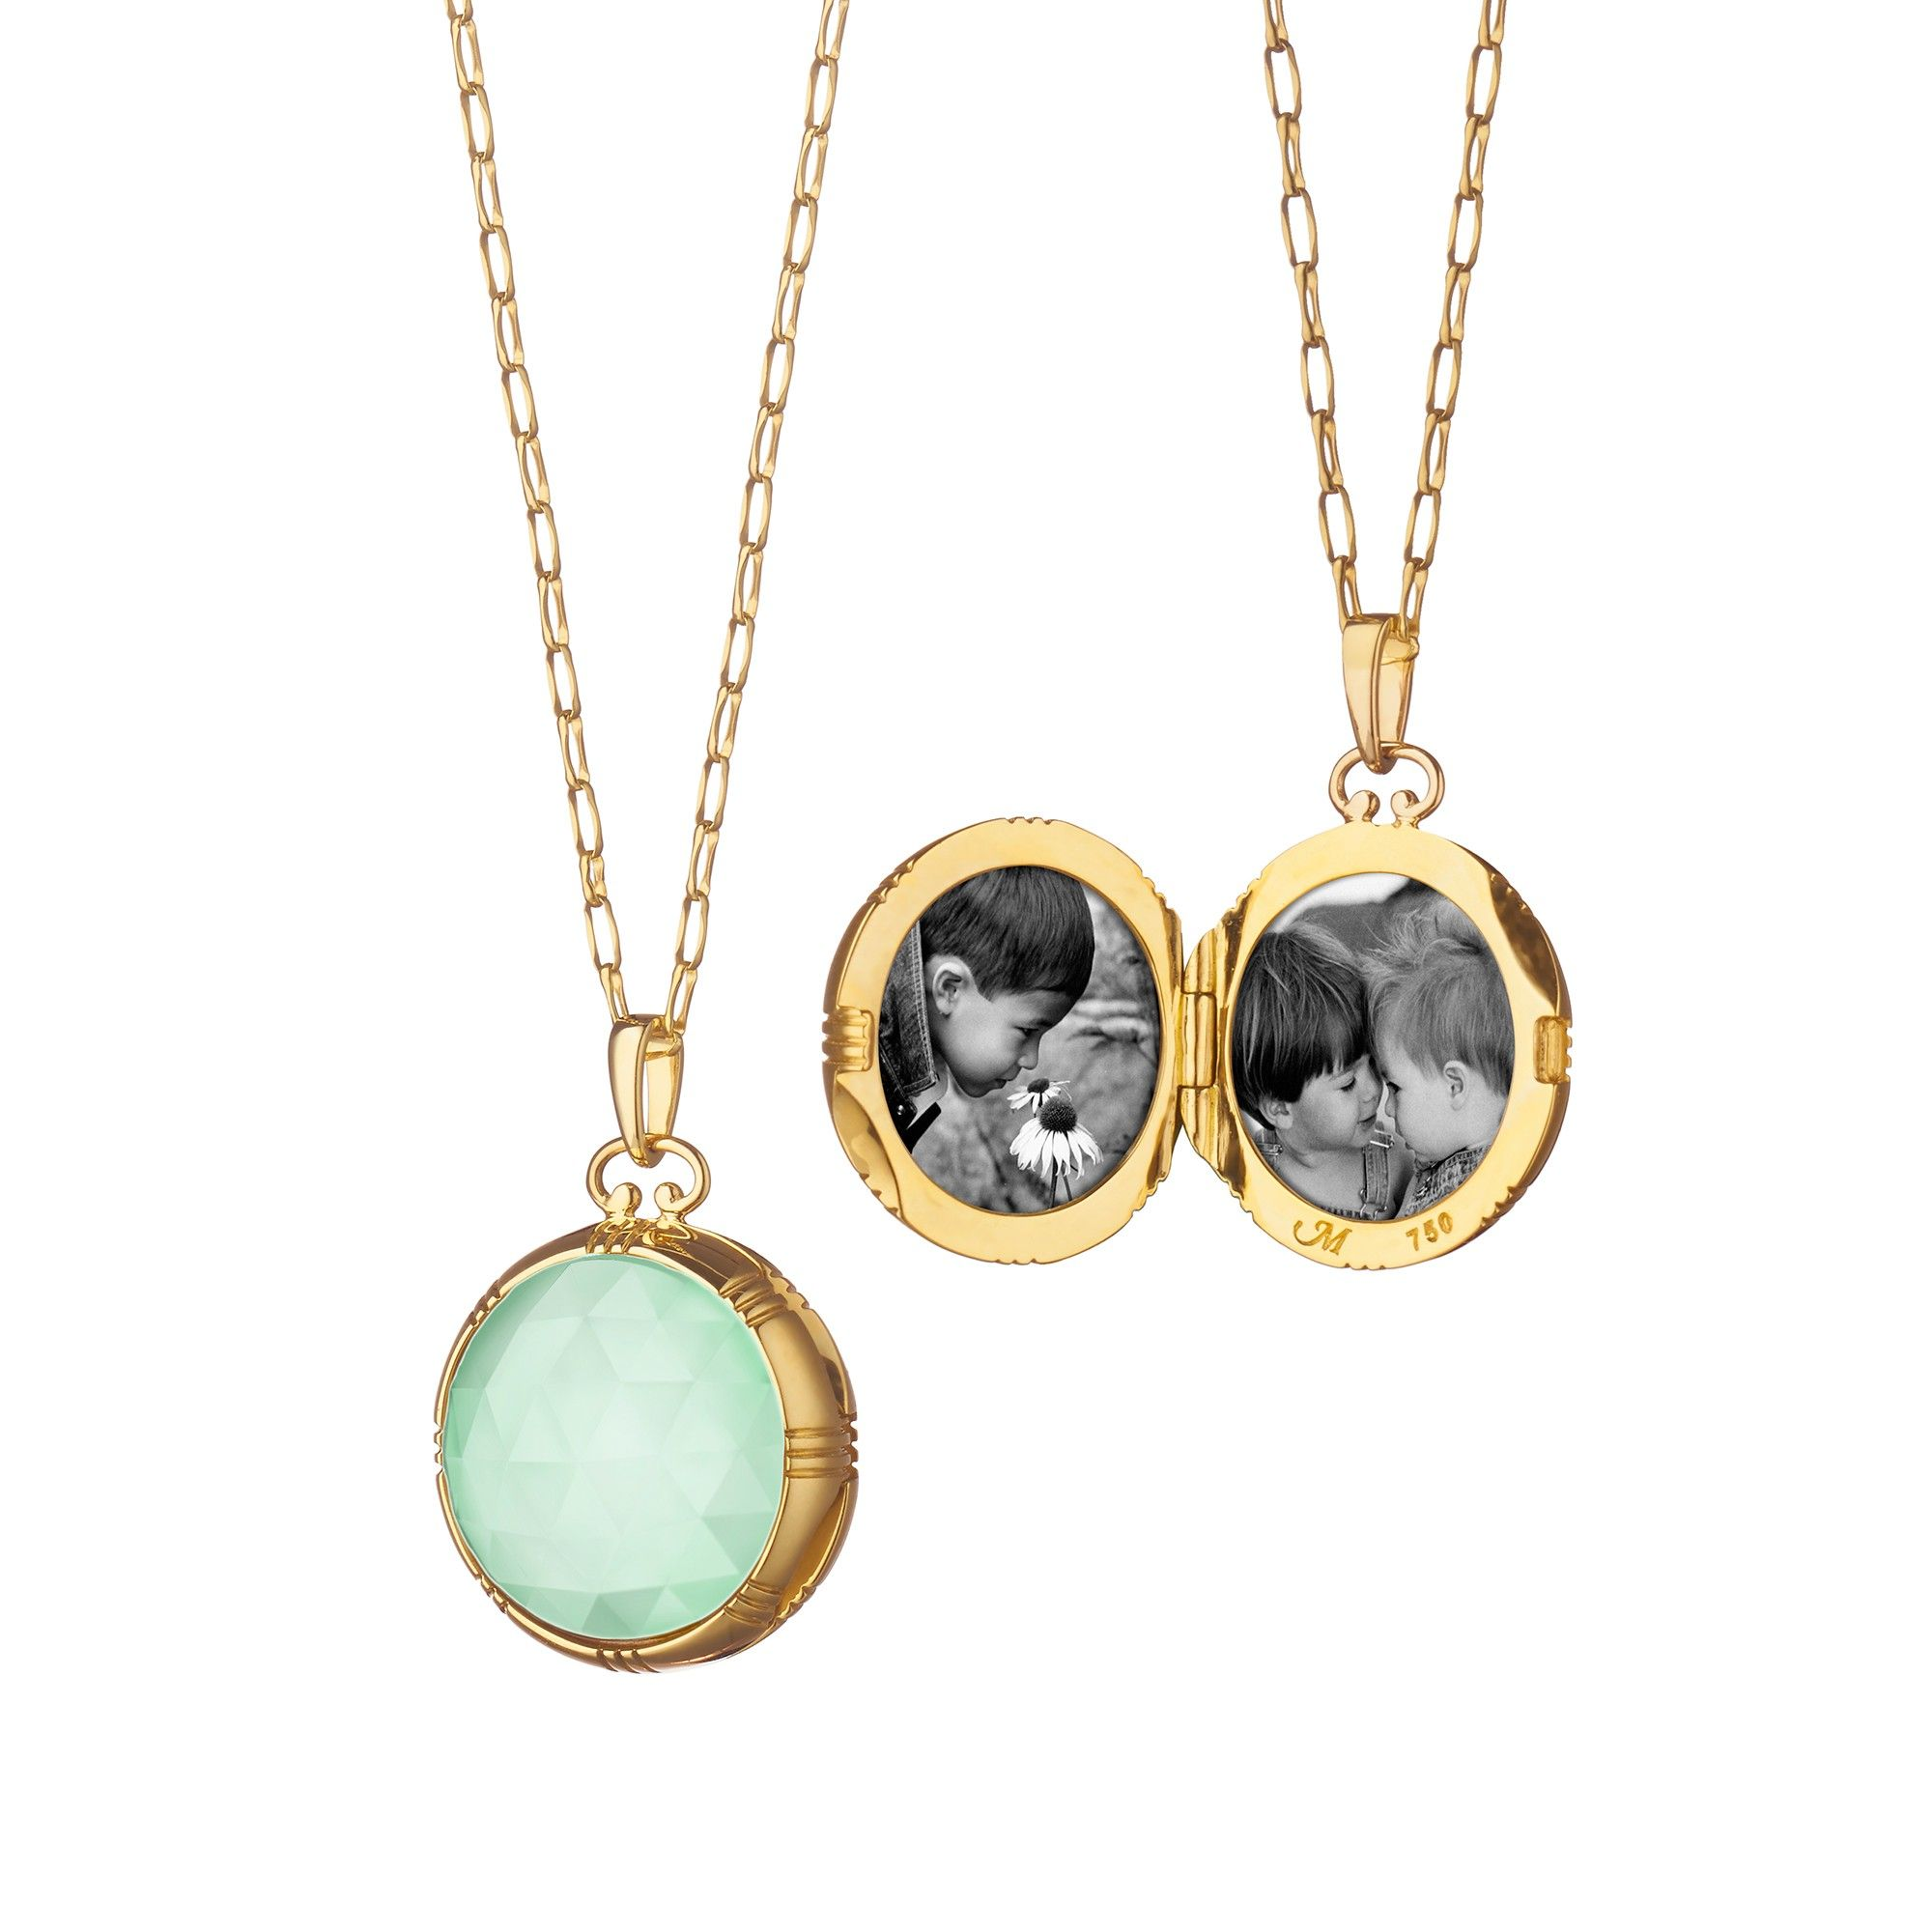 dwynwen f gold clogau jewellery silver and necklaces lockets hinds opal jewellers l locket crosses rose